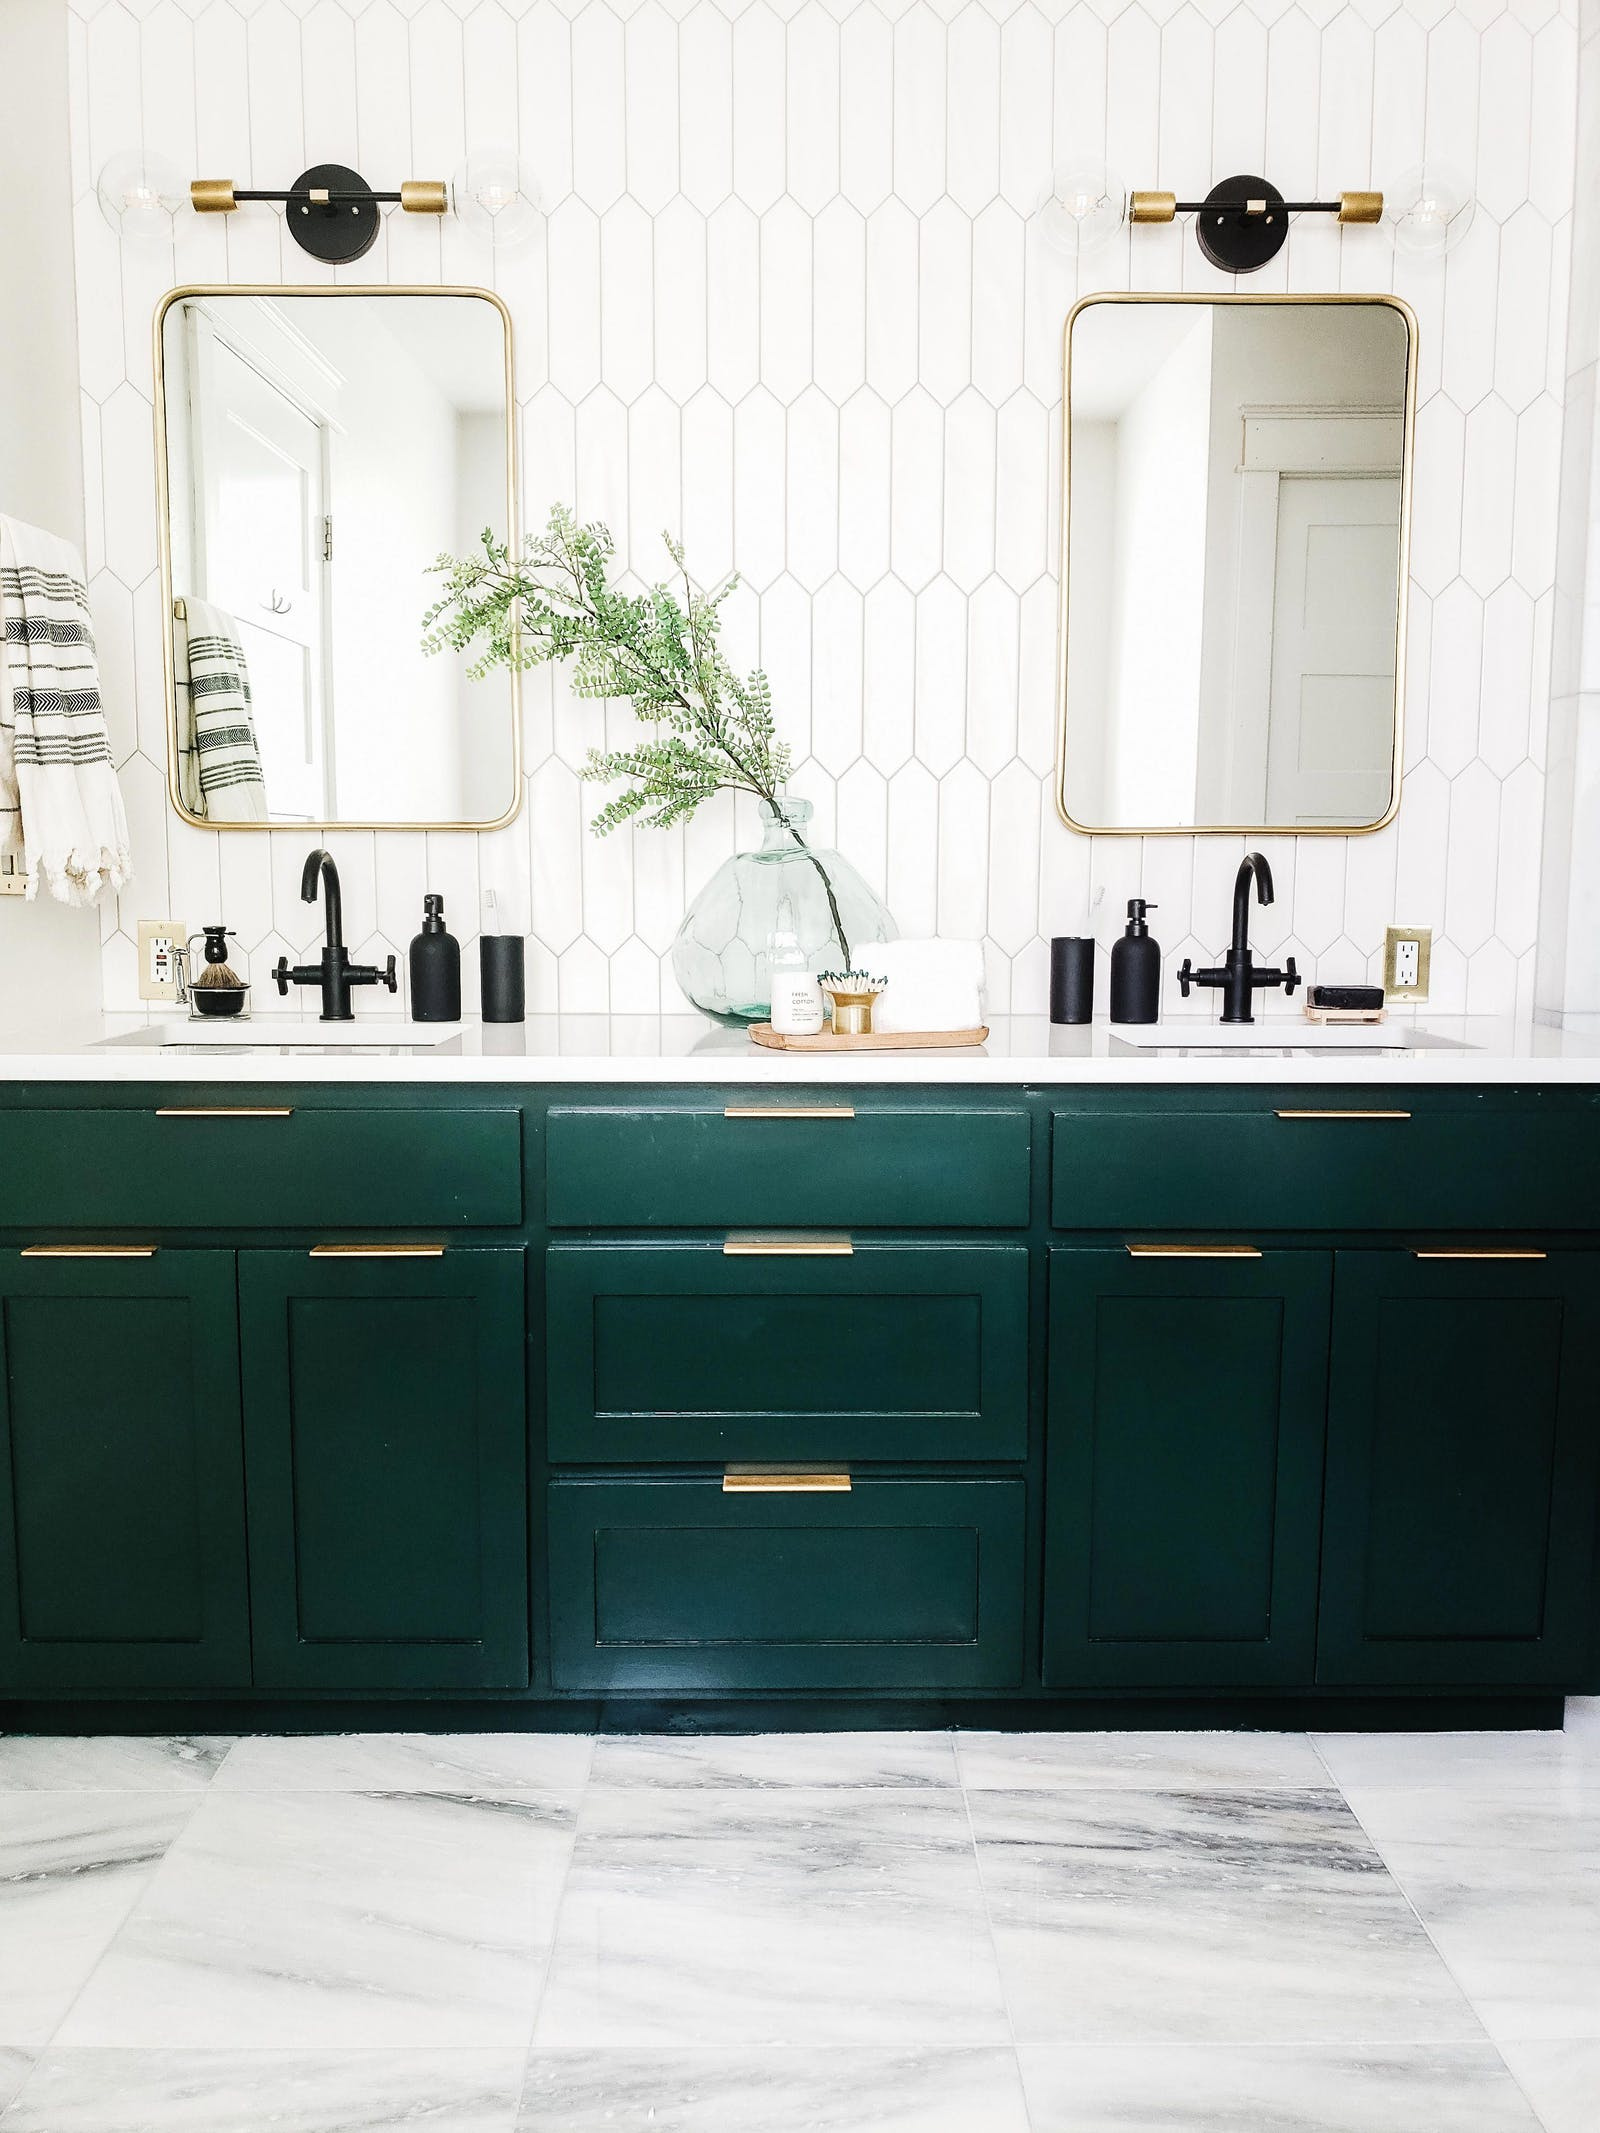 Bright bathroom with emerald green cabinets and tile walls